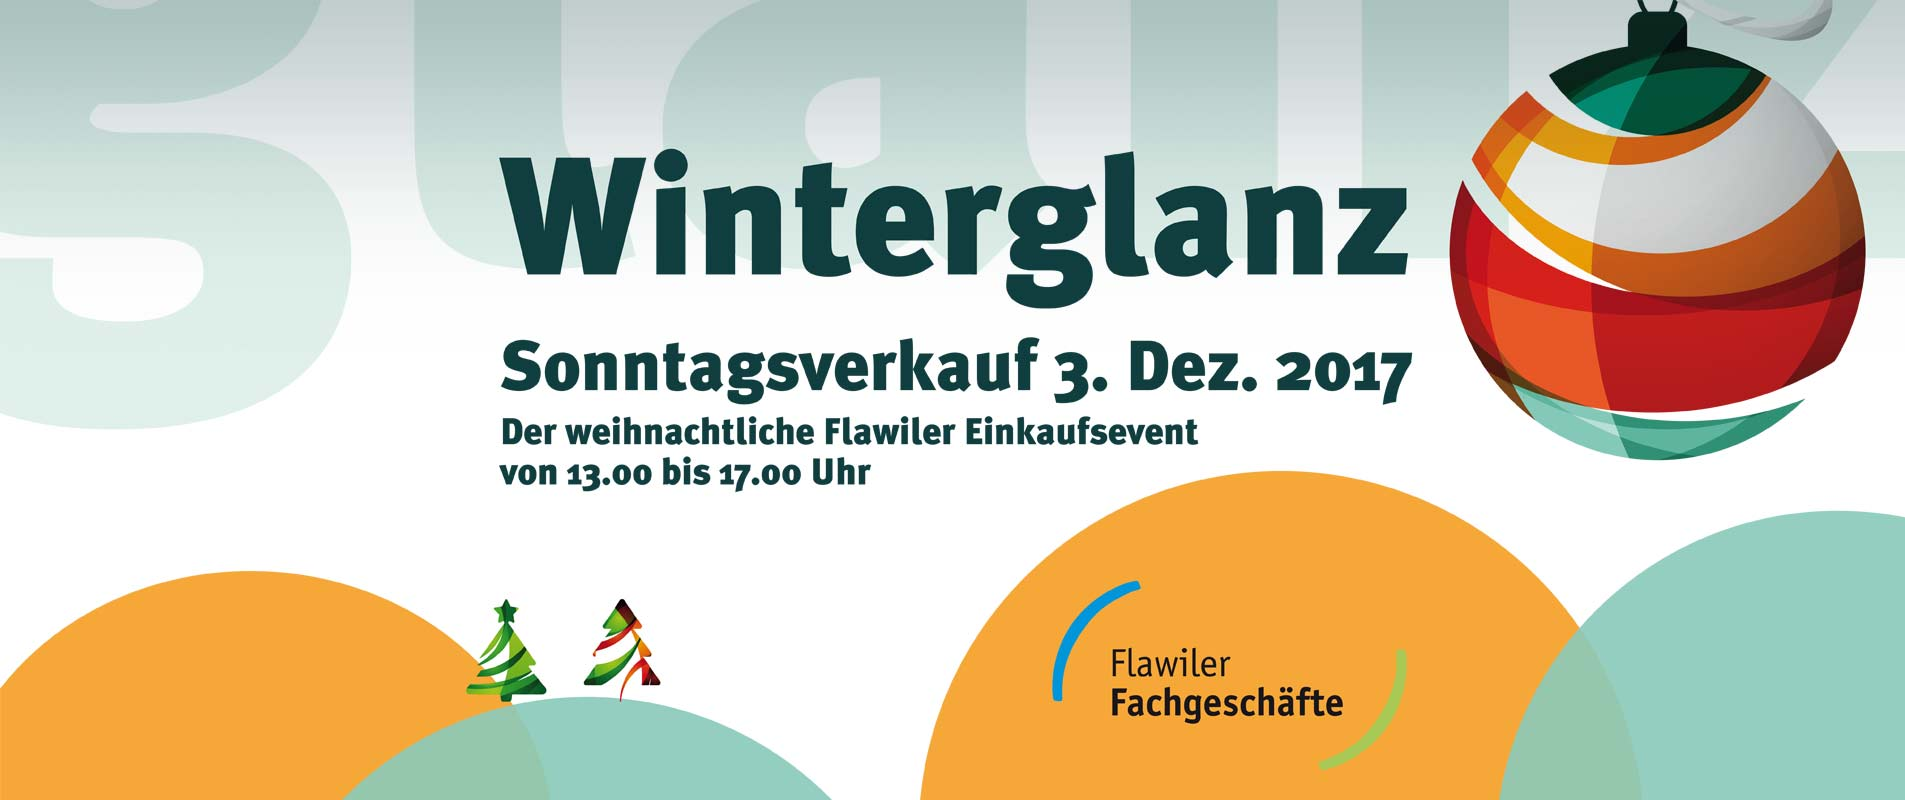 Slider_Winterglanz